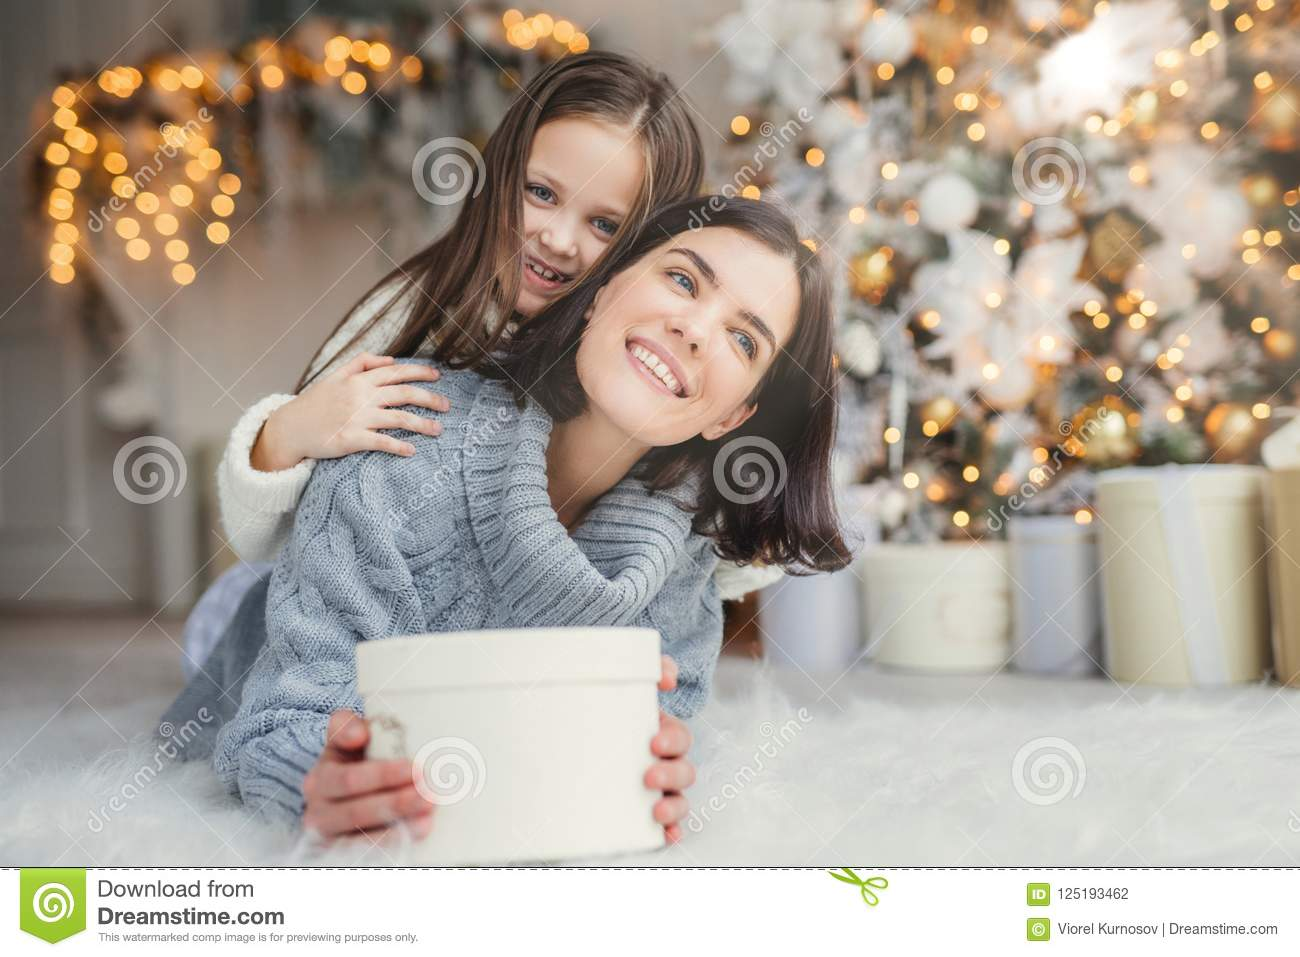 Portrait of happy mother and daughter spend free time together, embrace each other, have pleasant smiles, hold wrapped present box